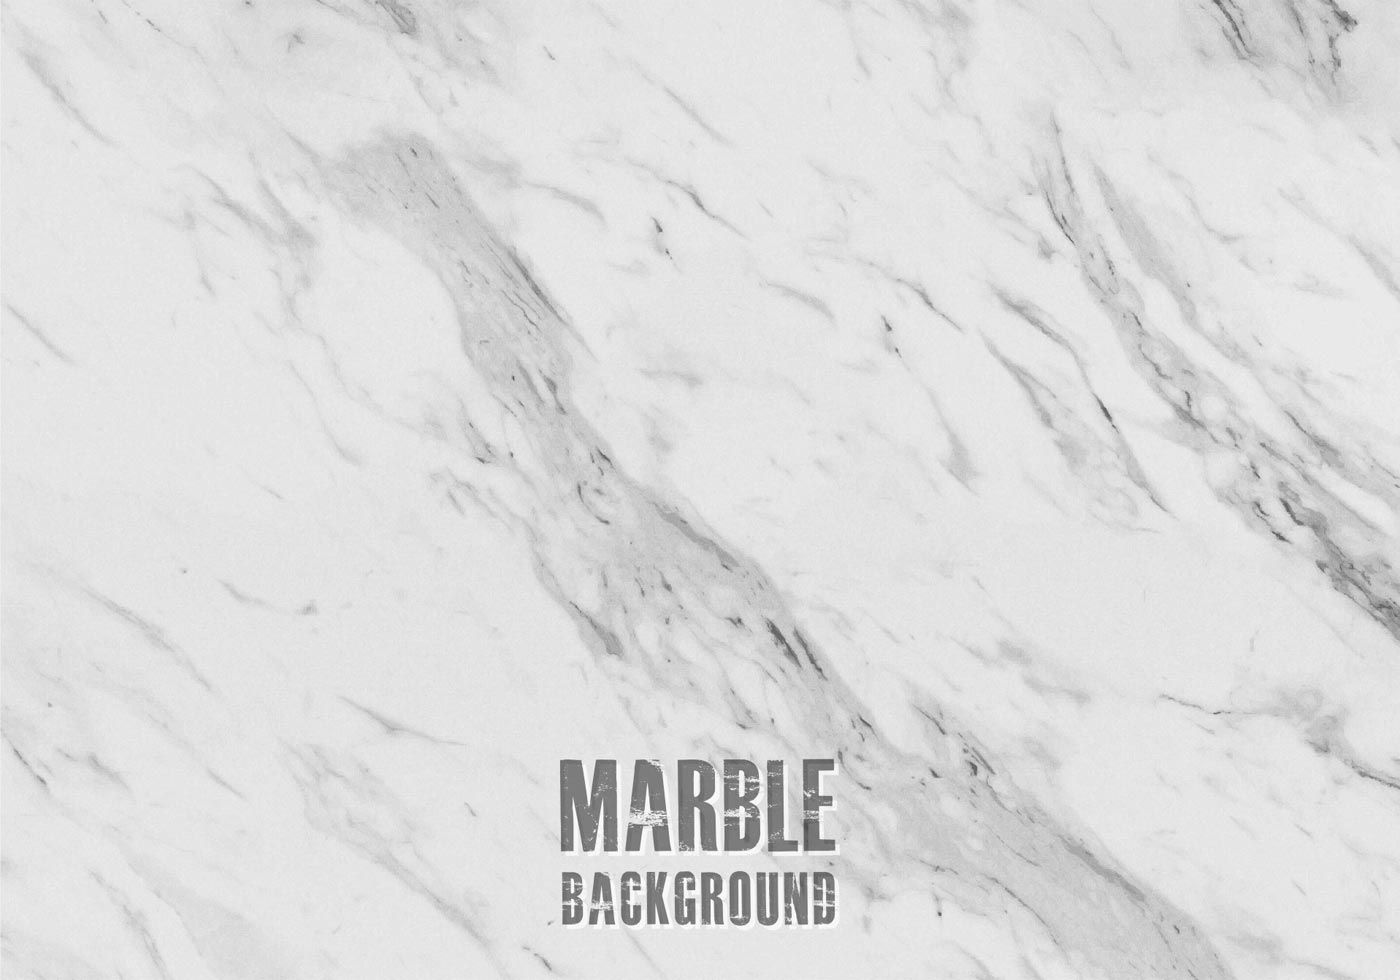 Most Inspiring Wallpaper Marble Text - 79be711617f5207757081400c43f7bd5  Image_905145.jpg